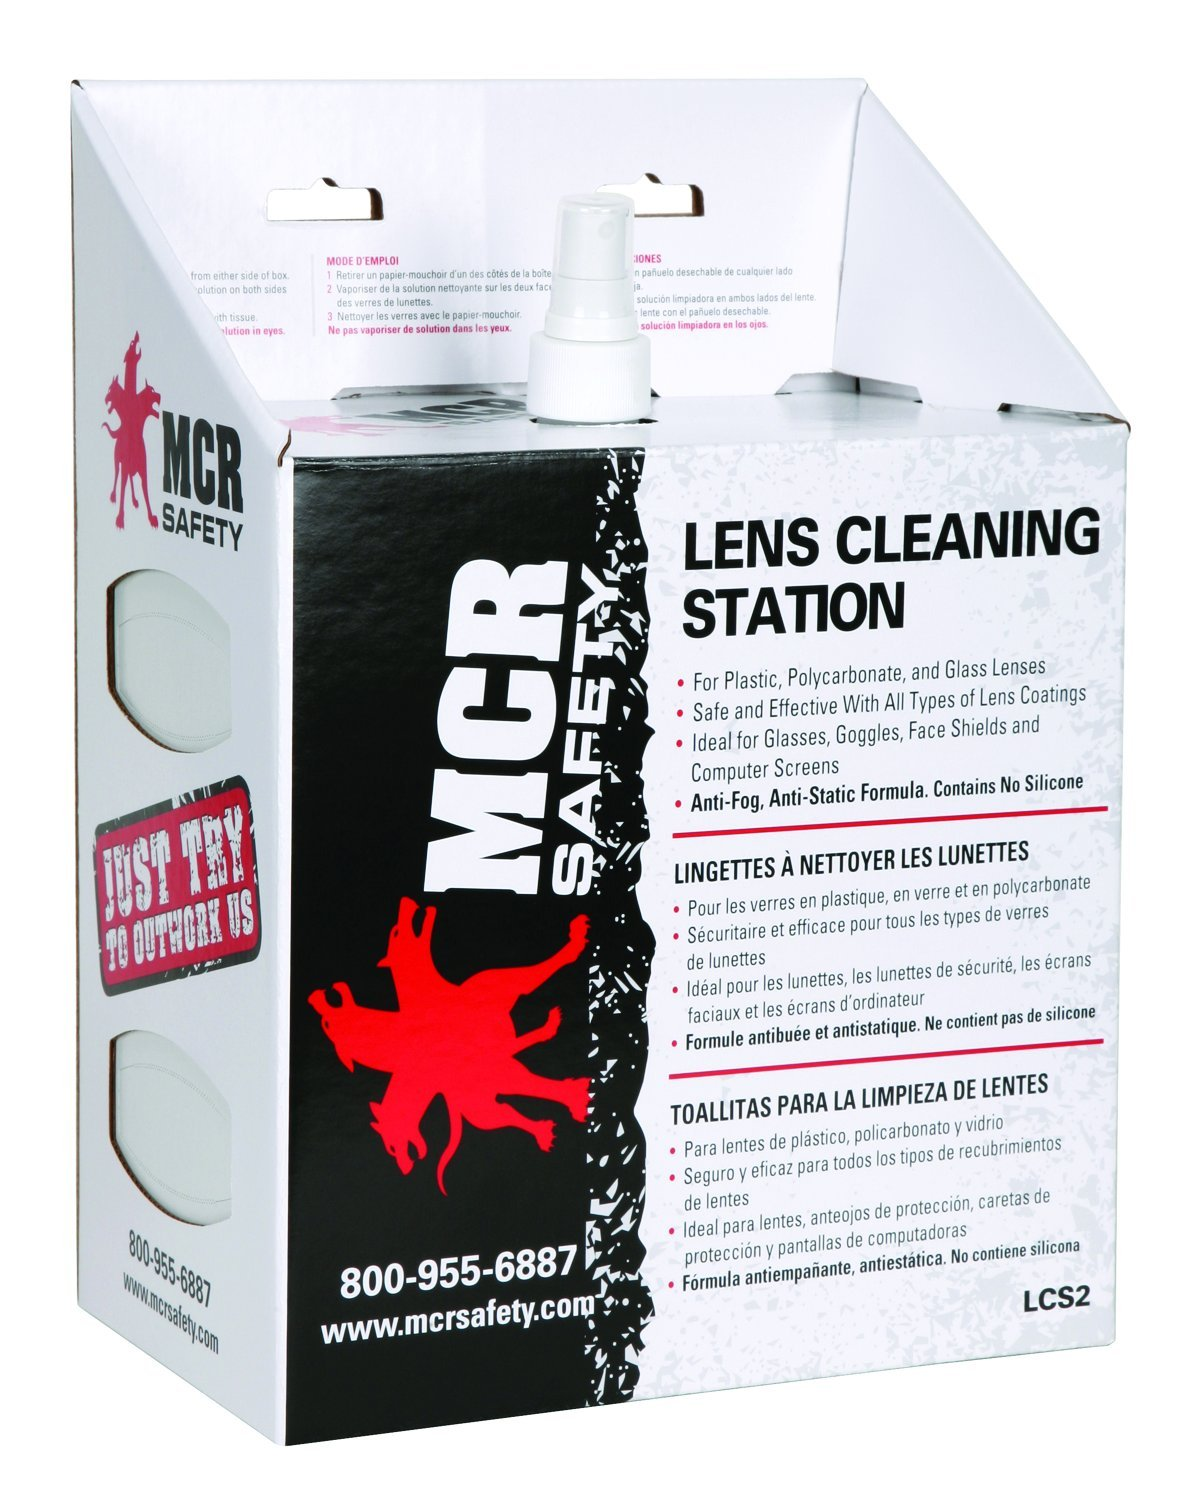 MCR Safety LCS2 Lens Cleaning Station with 16-Ounces Cleaning Solution, 1 Box of 300 Tissues